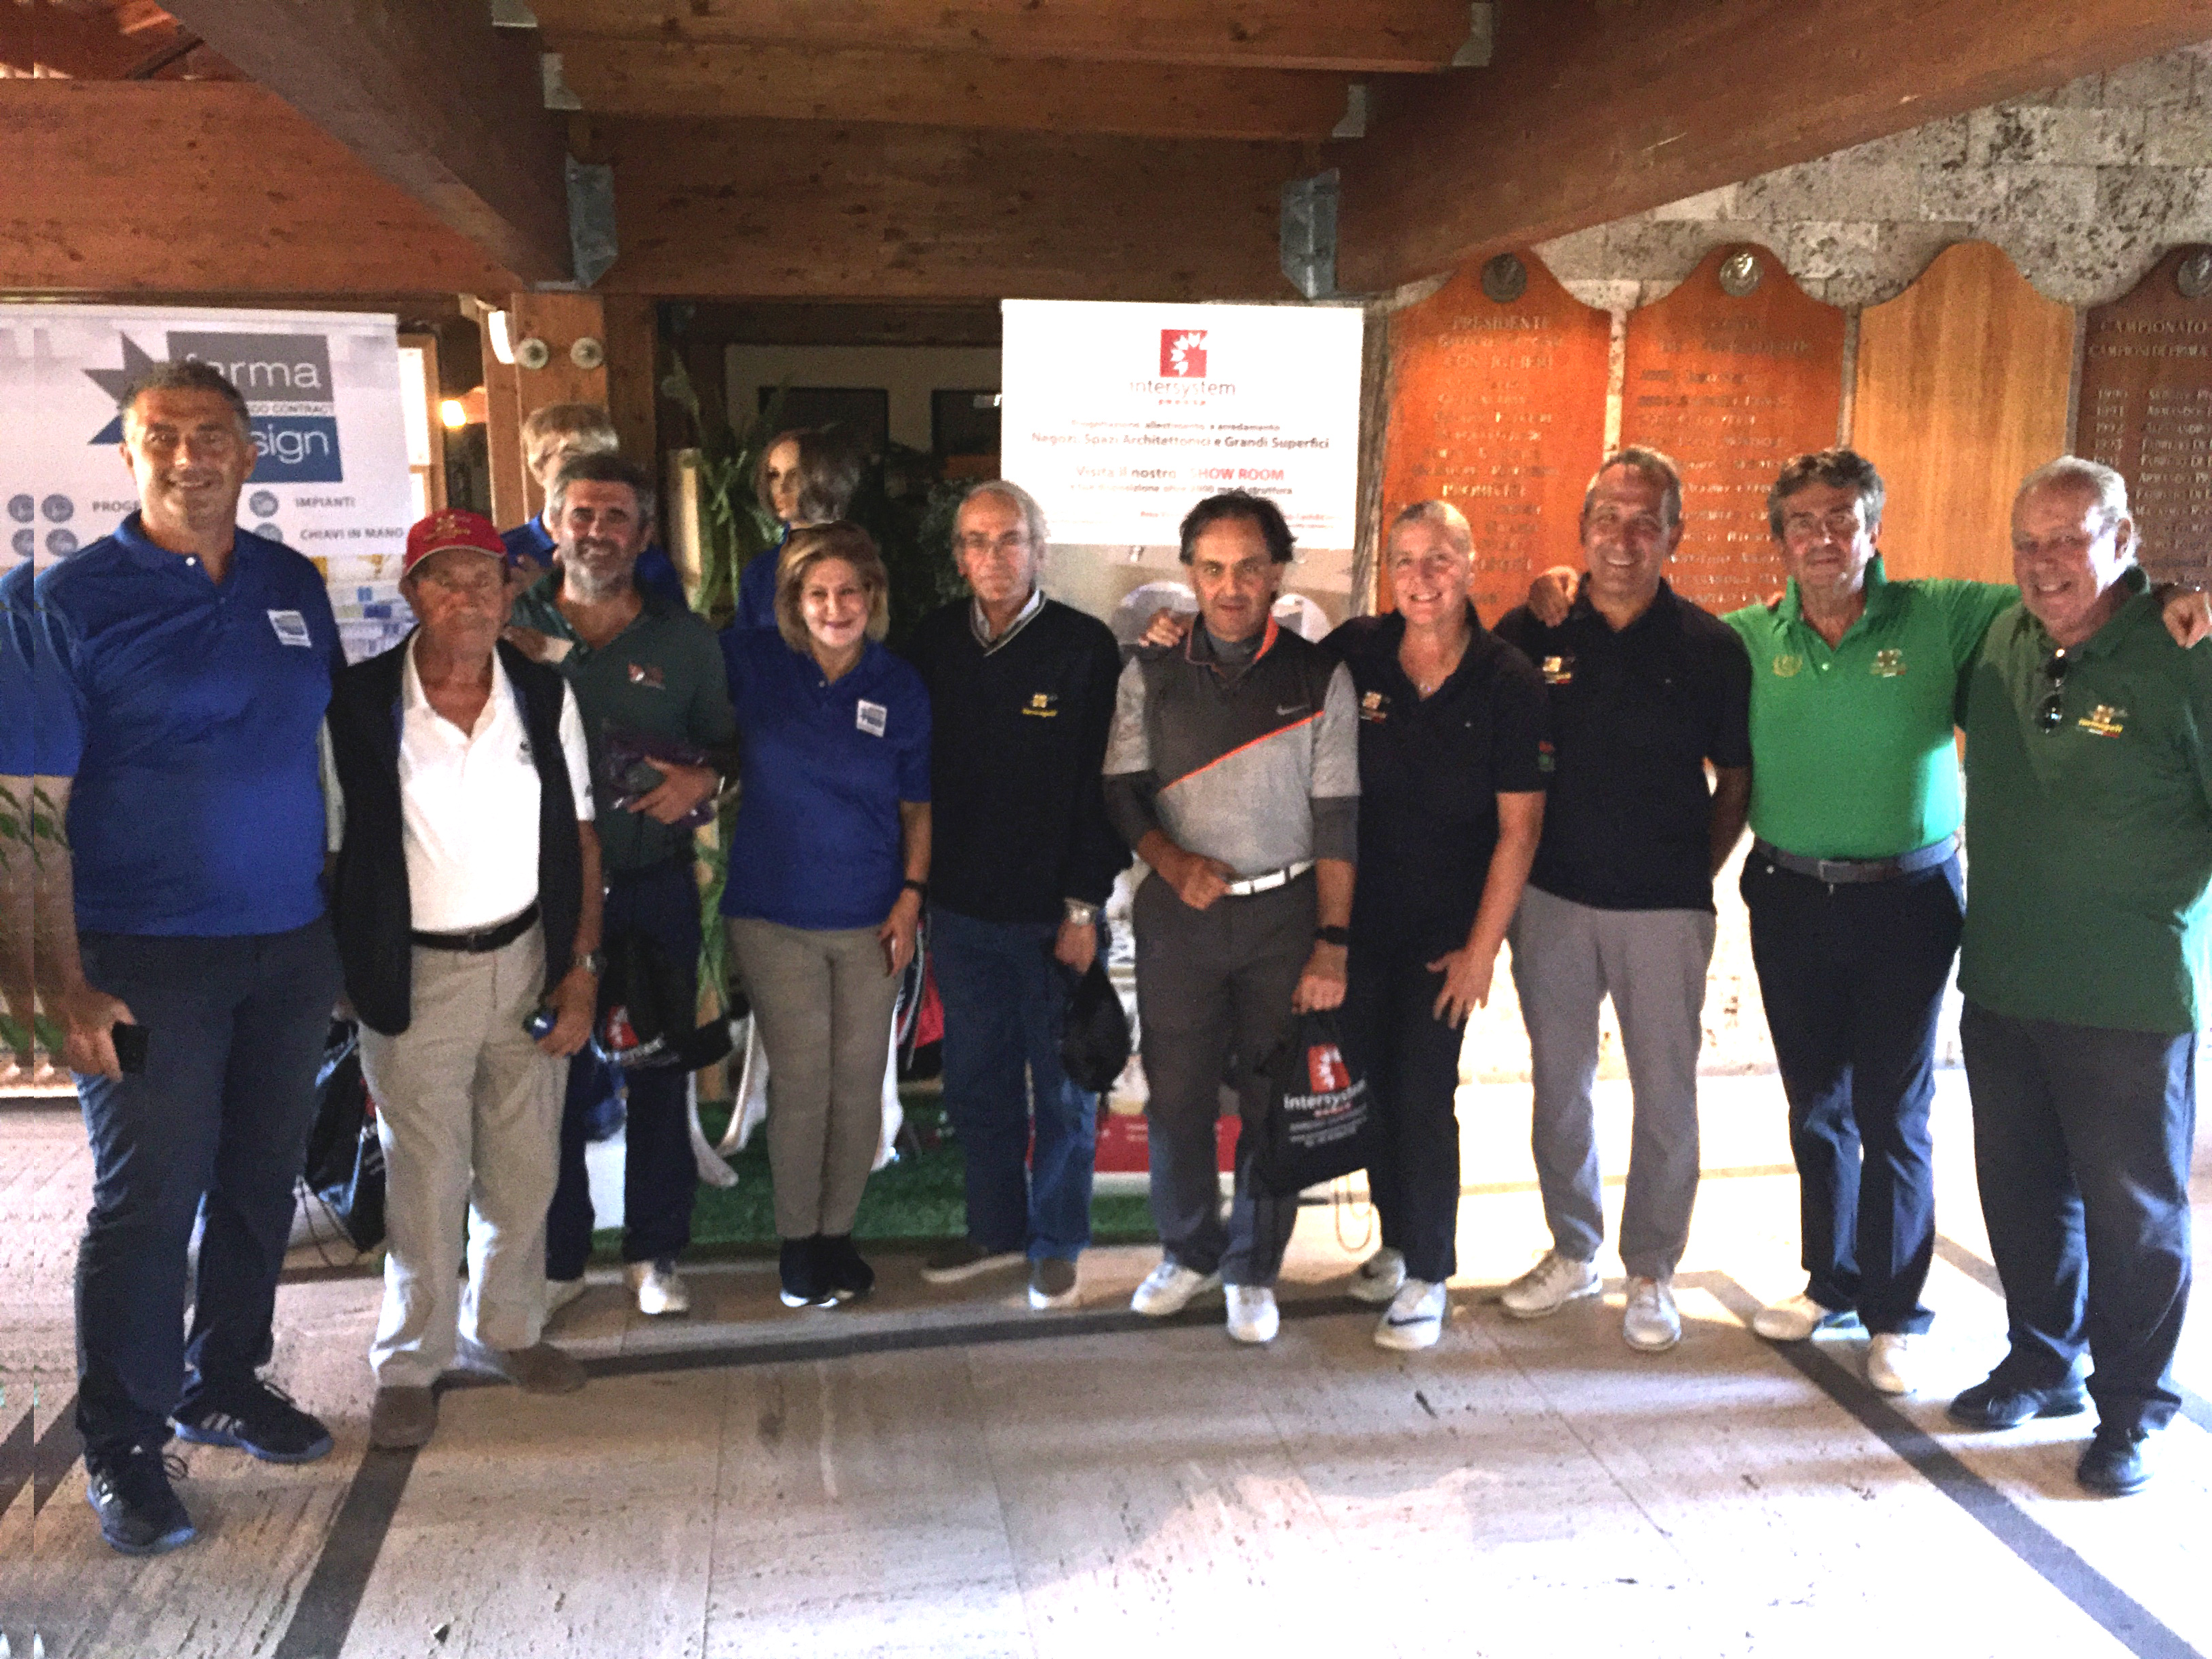 FarmaDesign Foto Evento Golf 26/09/2018